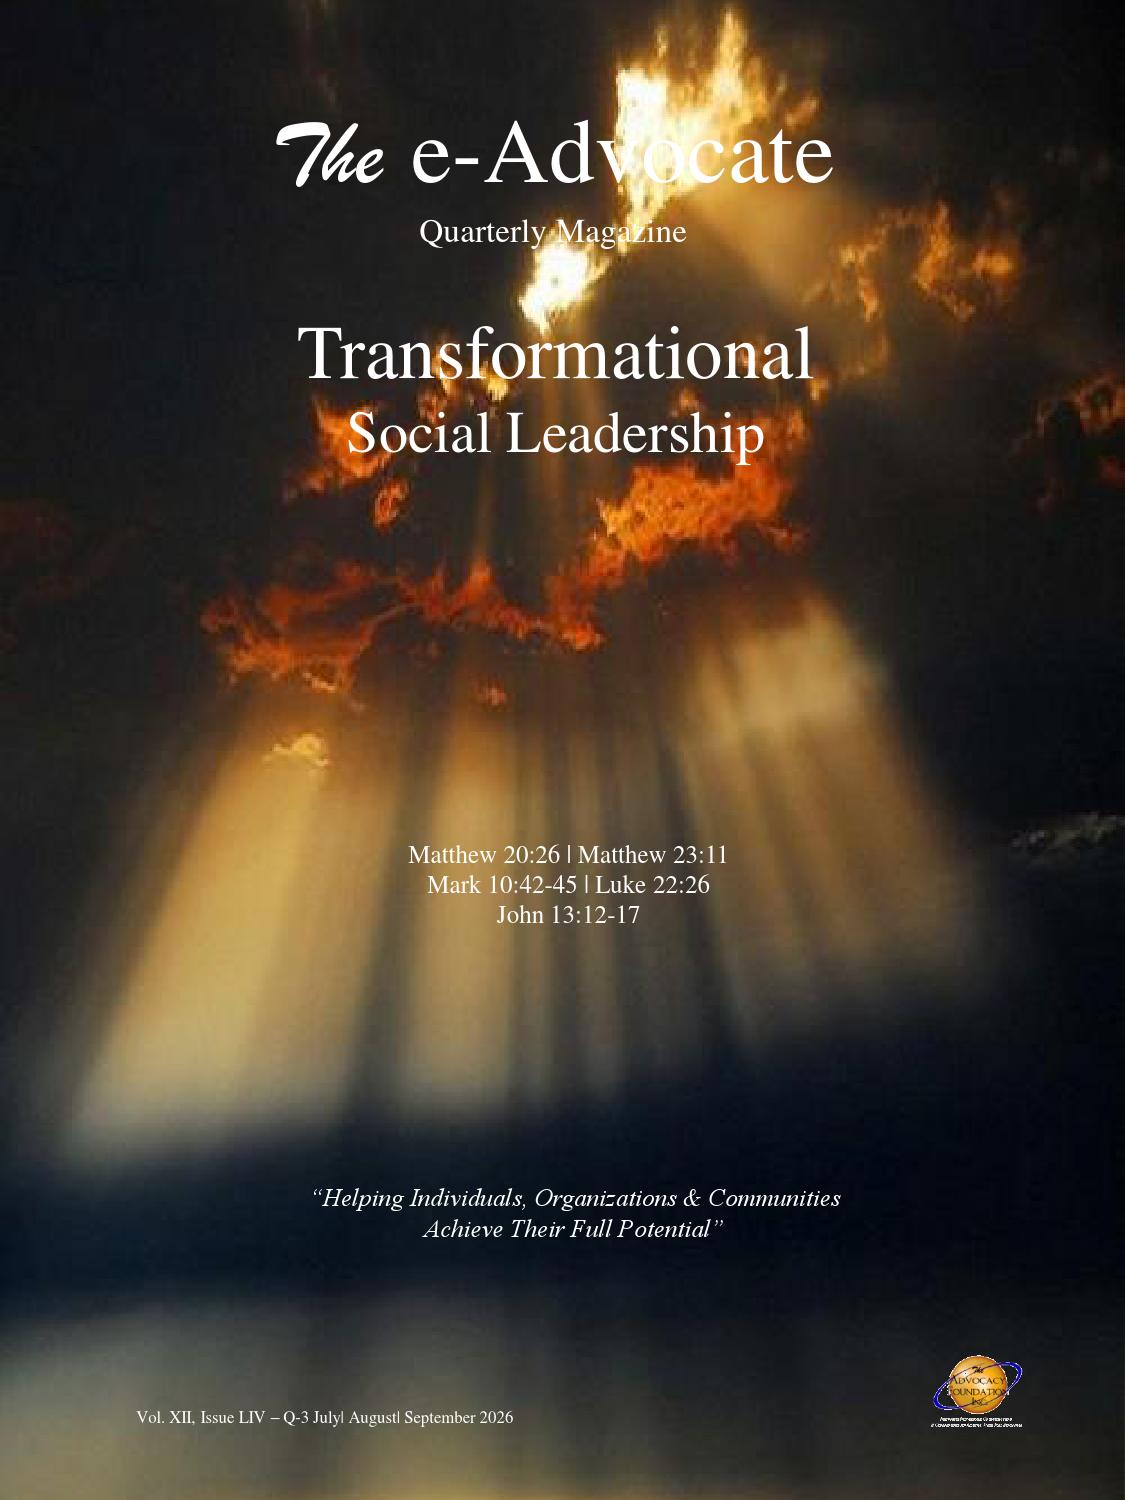 leadership in organizations yukl Major topics and controversies include leadership versus management, leader traits and skills, leader behavior and activities, leader power and influence, situational determinants of leader behavior, situational moderator variables, transformational leadership, importance of leadership for organizational effectiveness, and leadership as an.